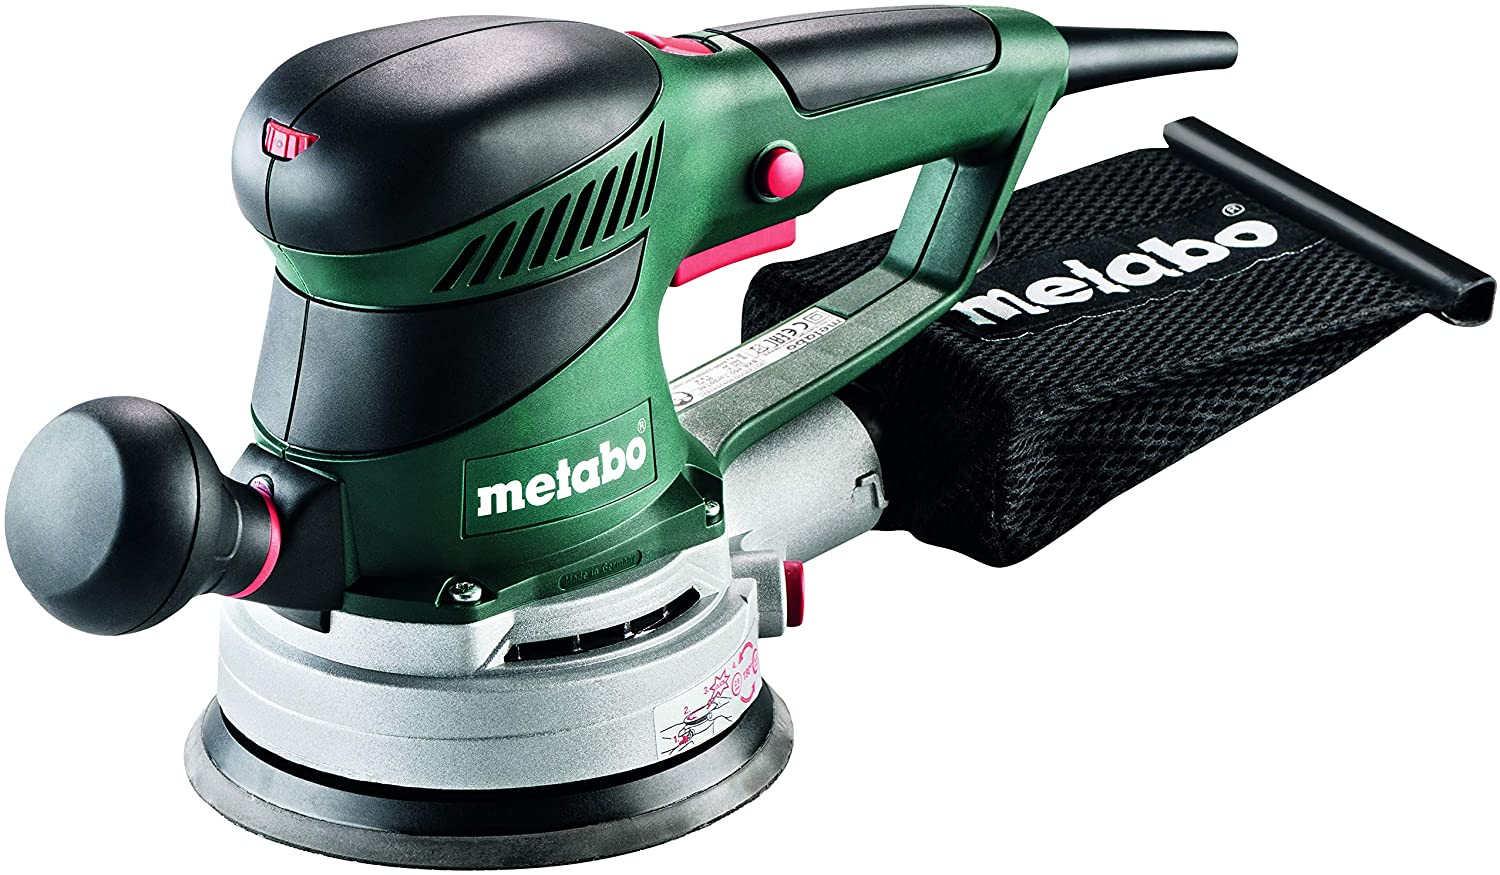 Metabo SXE 450 TurboTec It is very popular 350 Fixed price for sale Disc Watt Electronic Sander